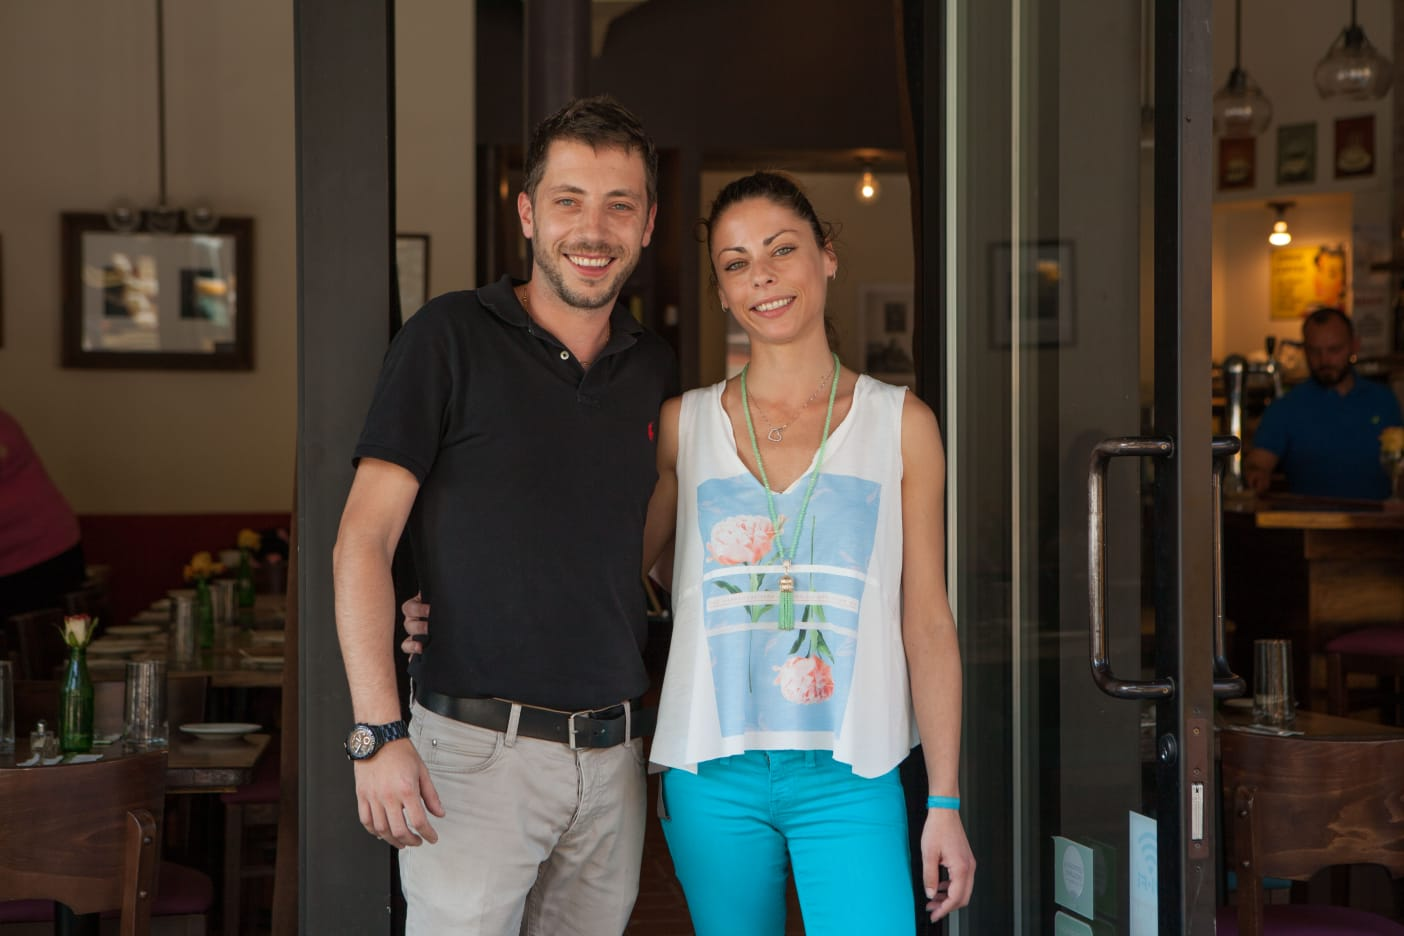 Arco Cafe Team - Daniele e Francesca - Sardinian Food